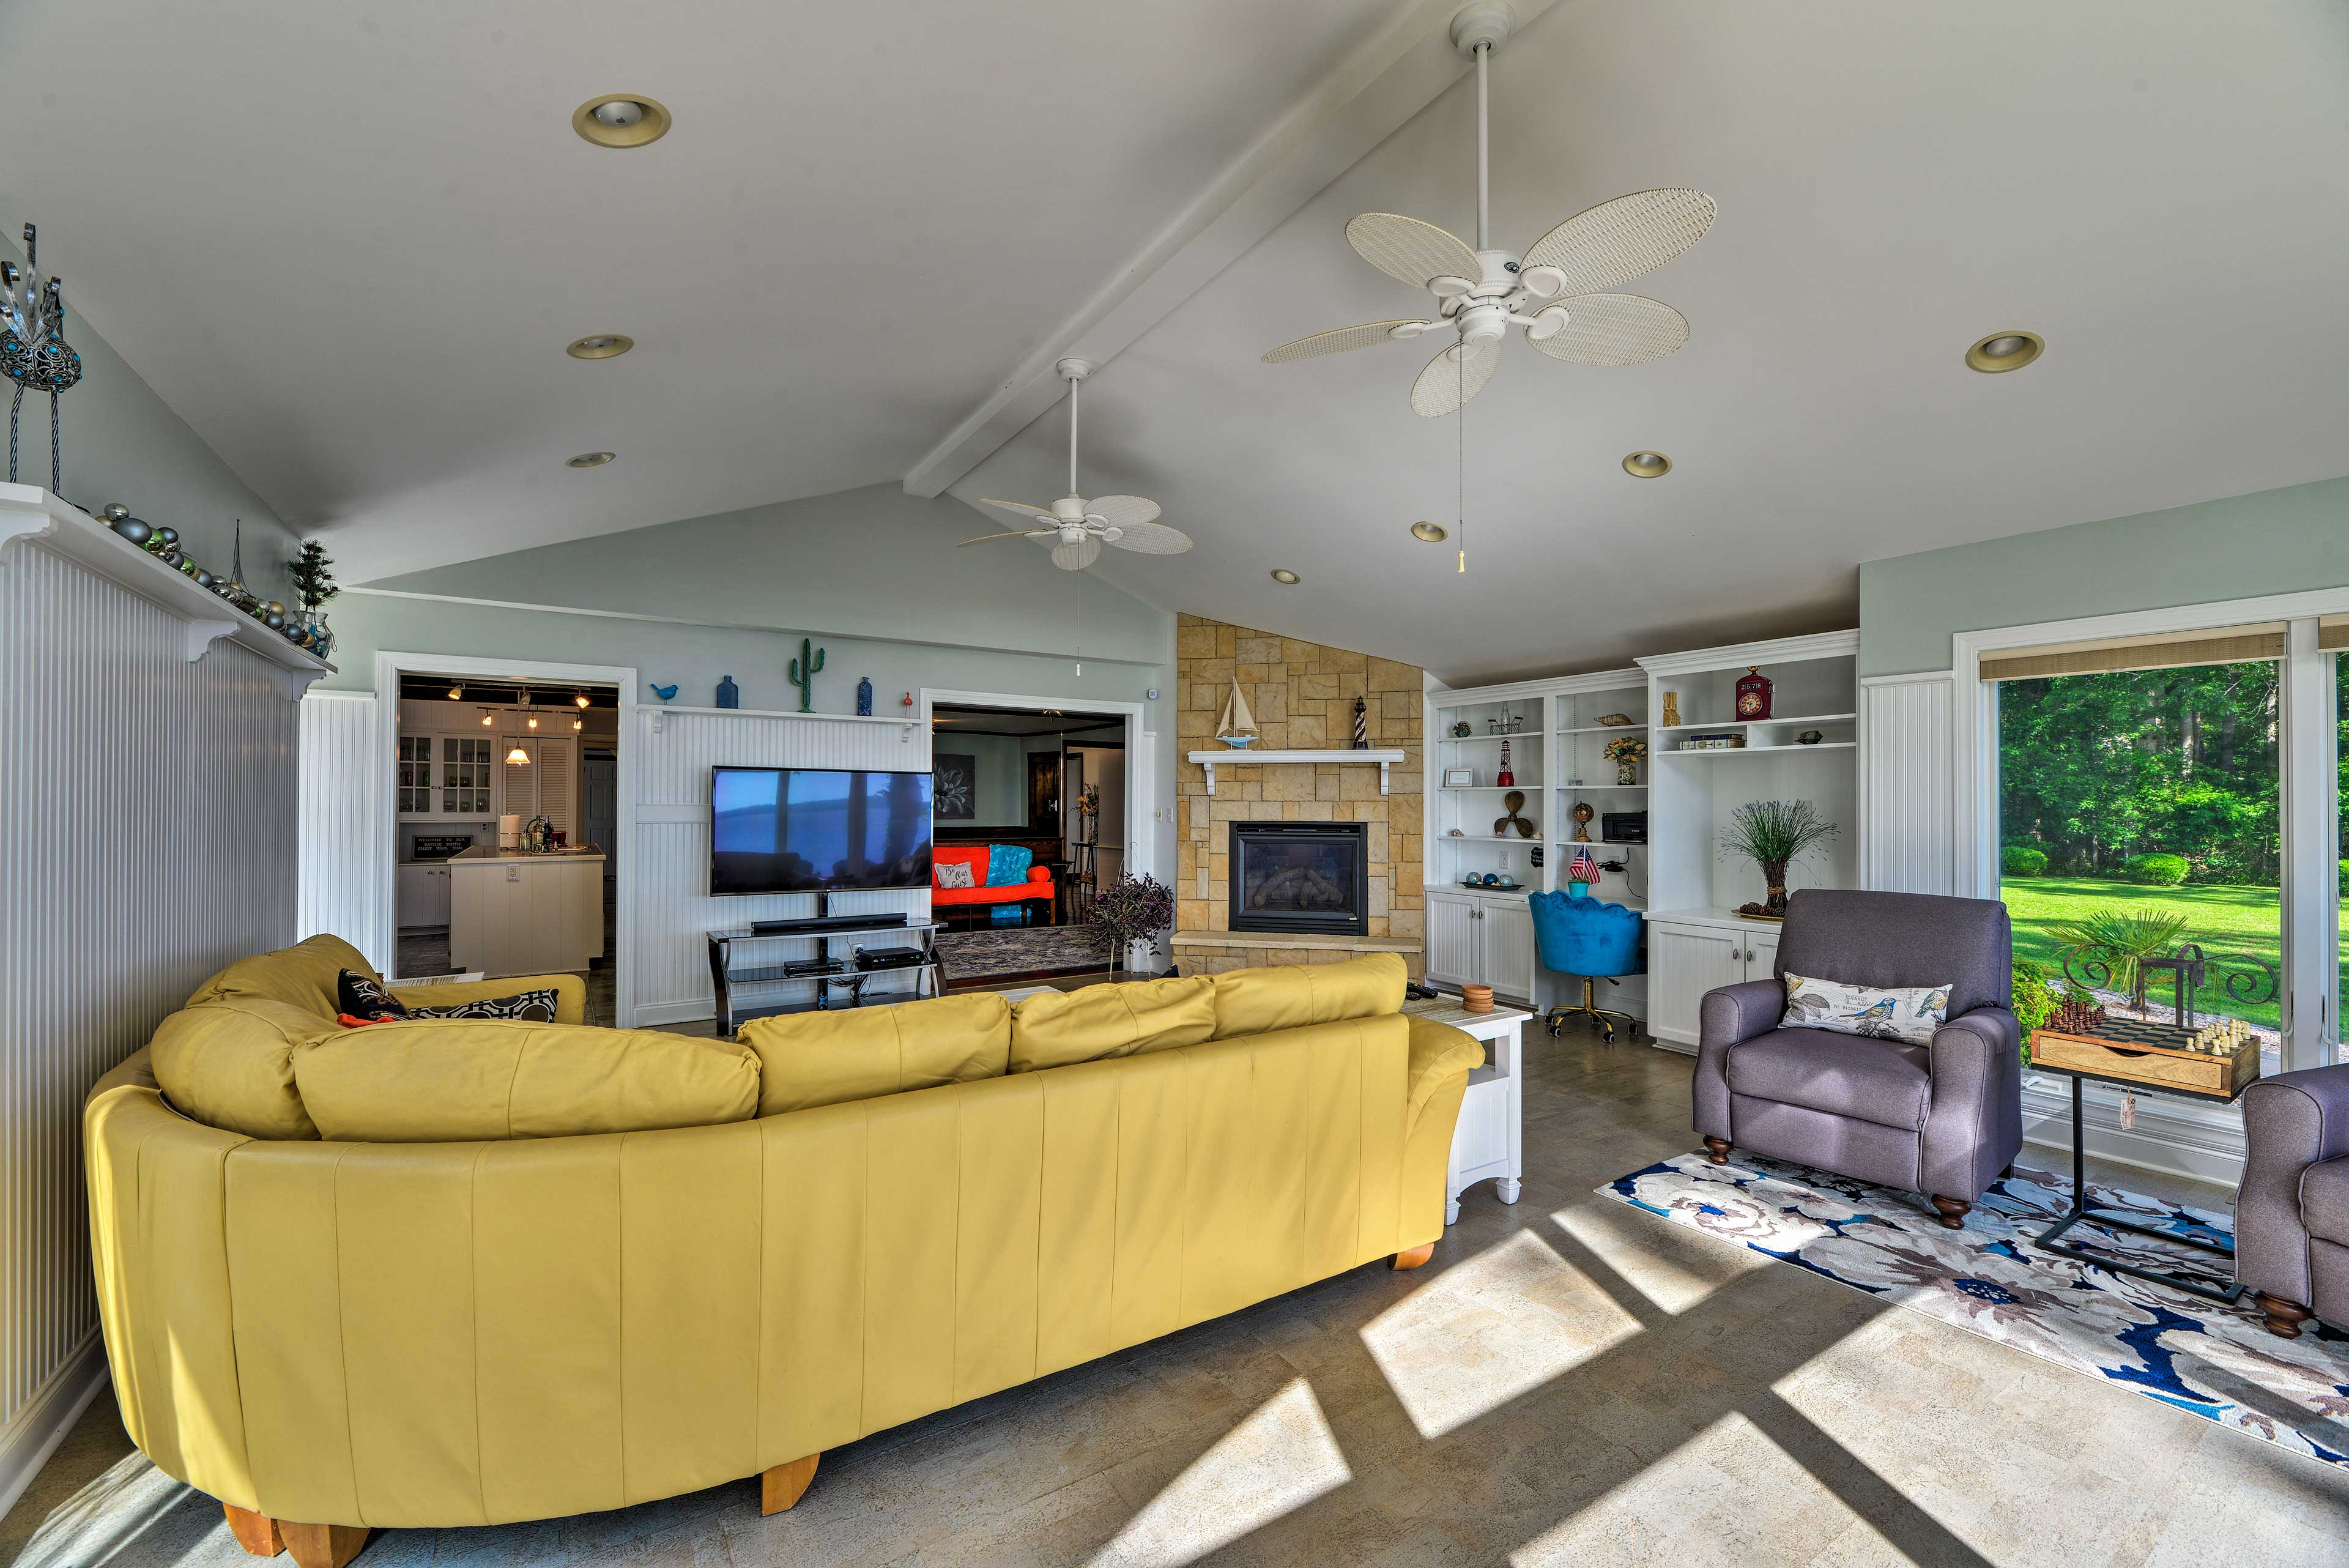 Kick back and watch your favorite shows on the flat-screen TV.